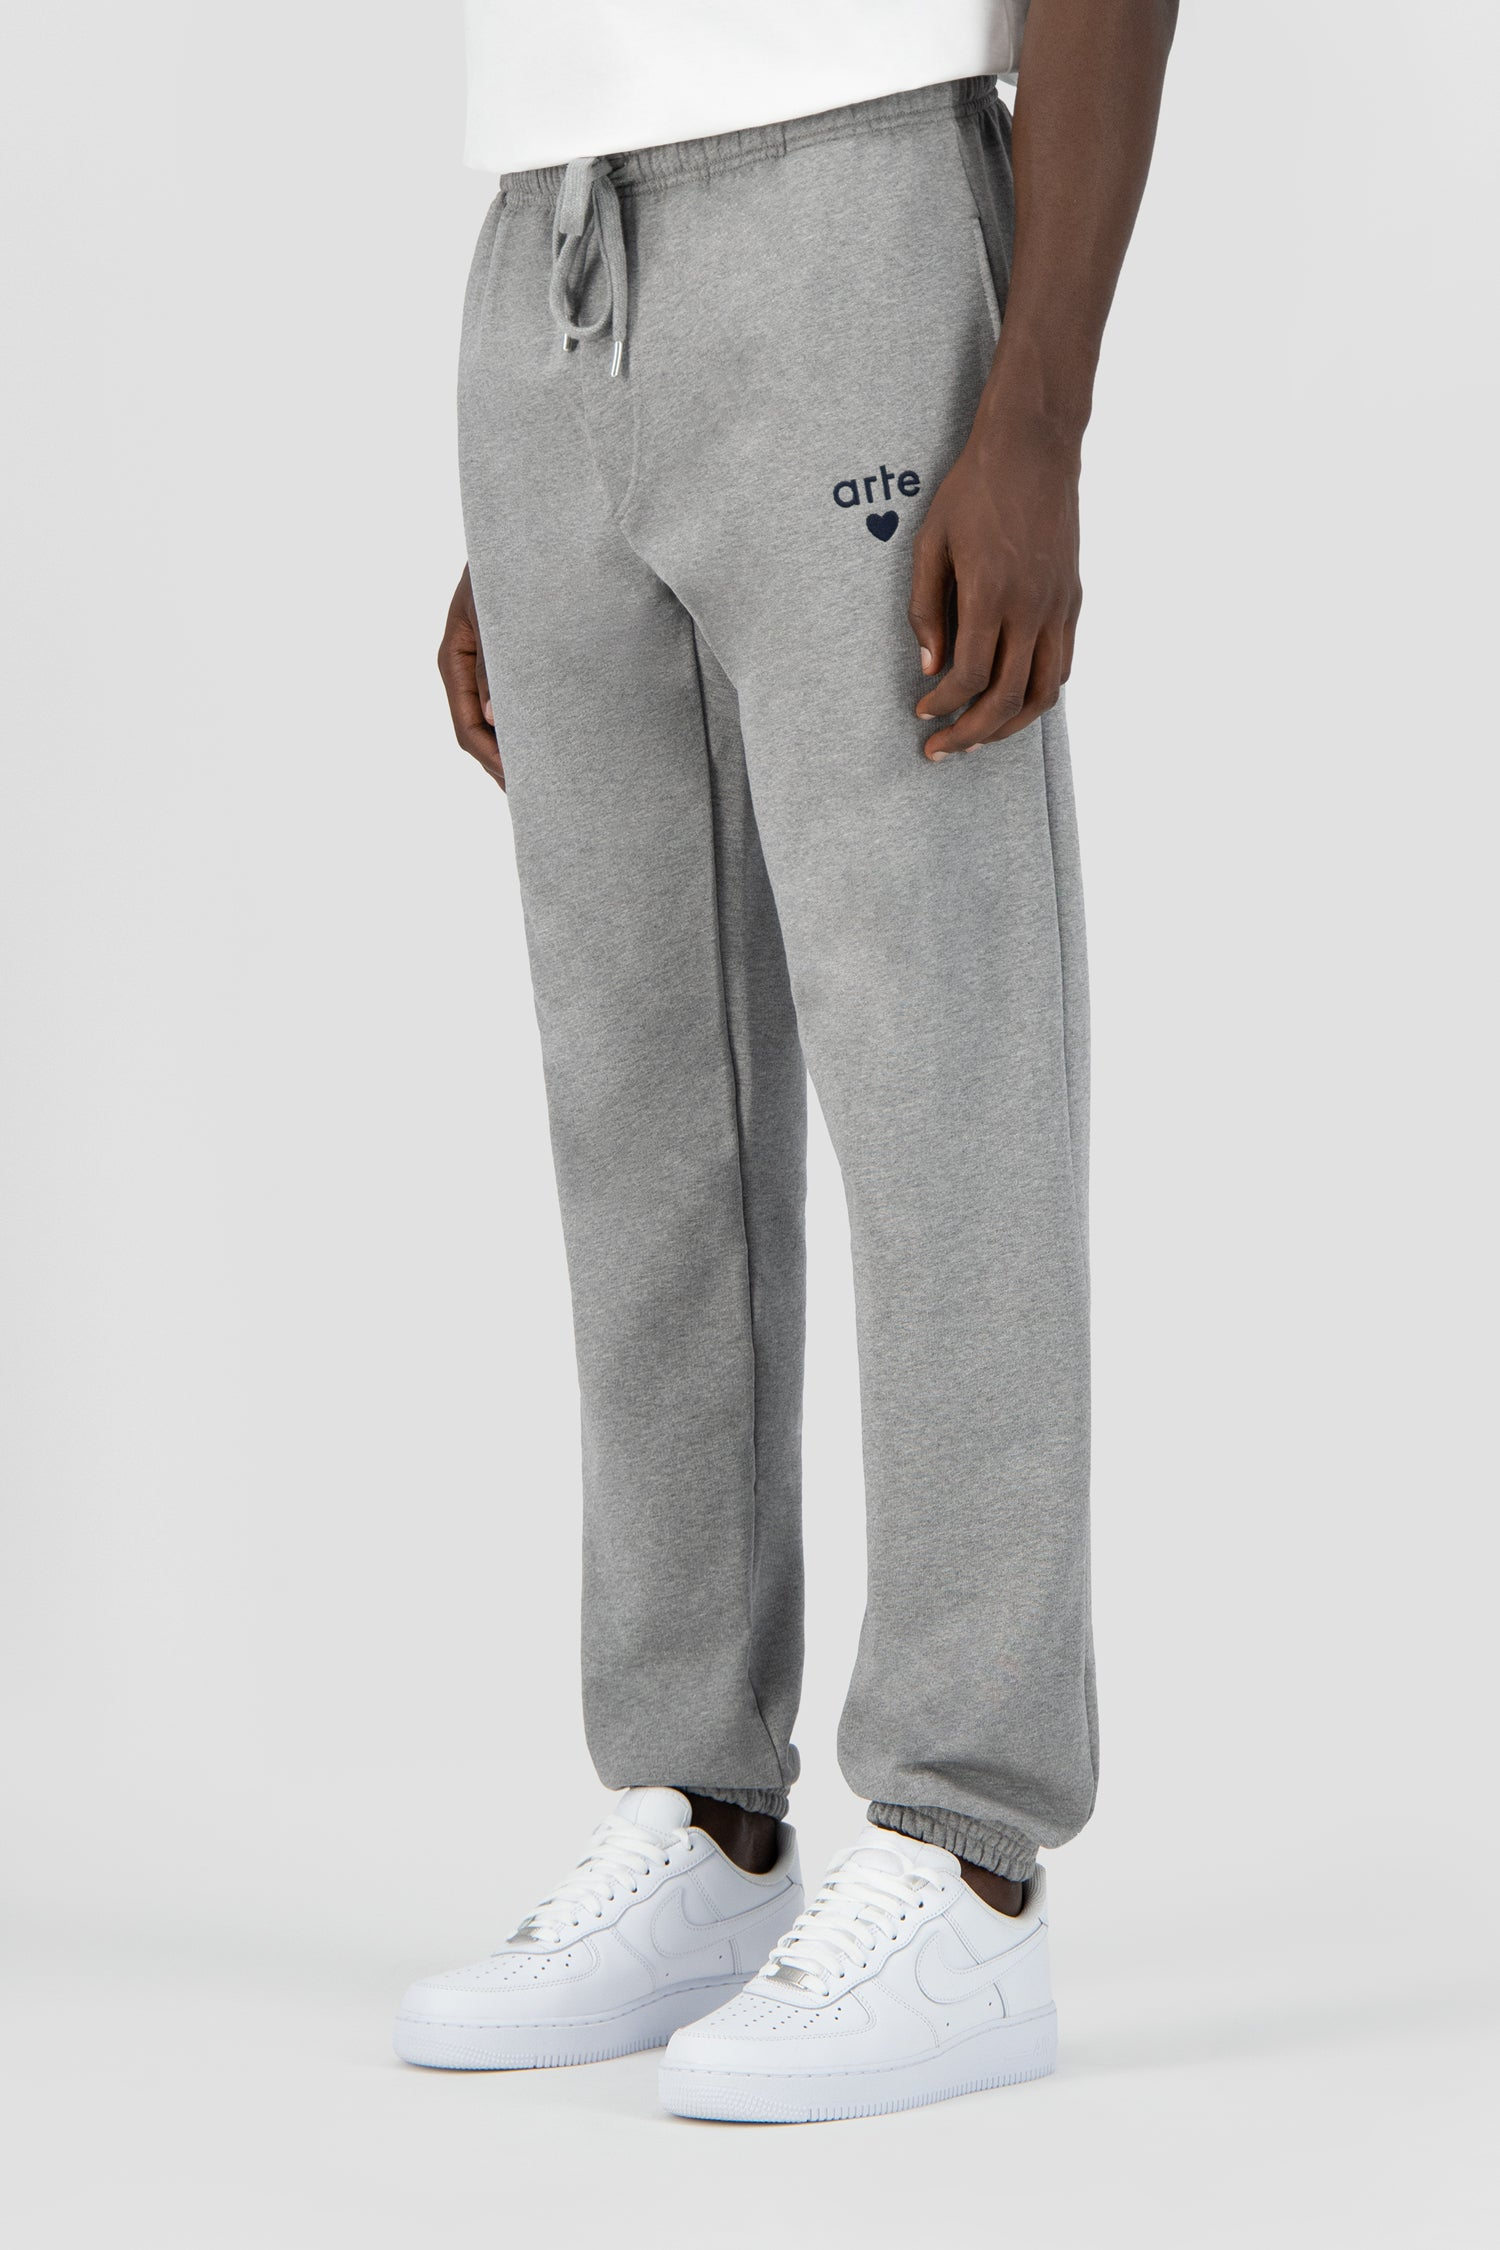 Tristian Heart Sweatpants - Gris